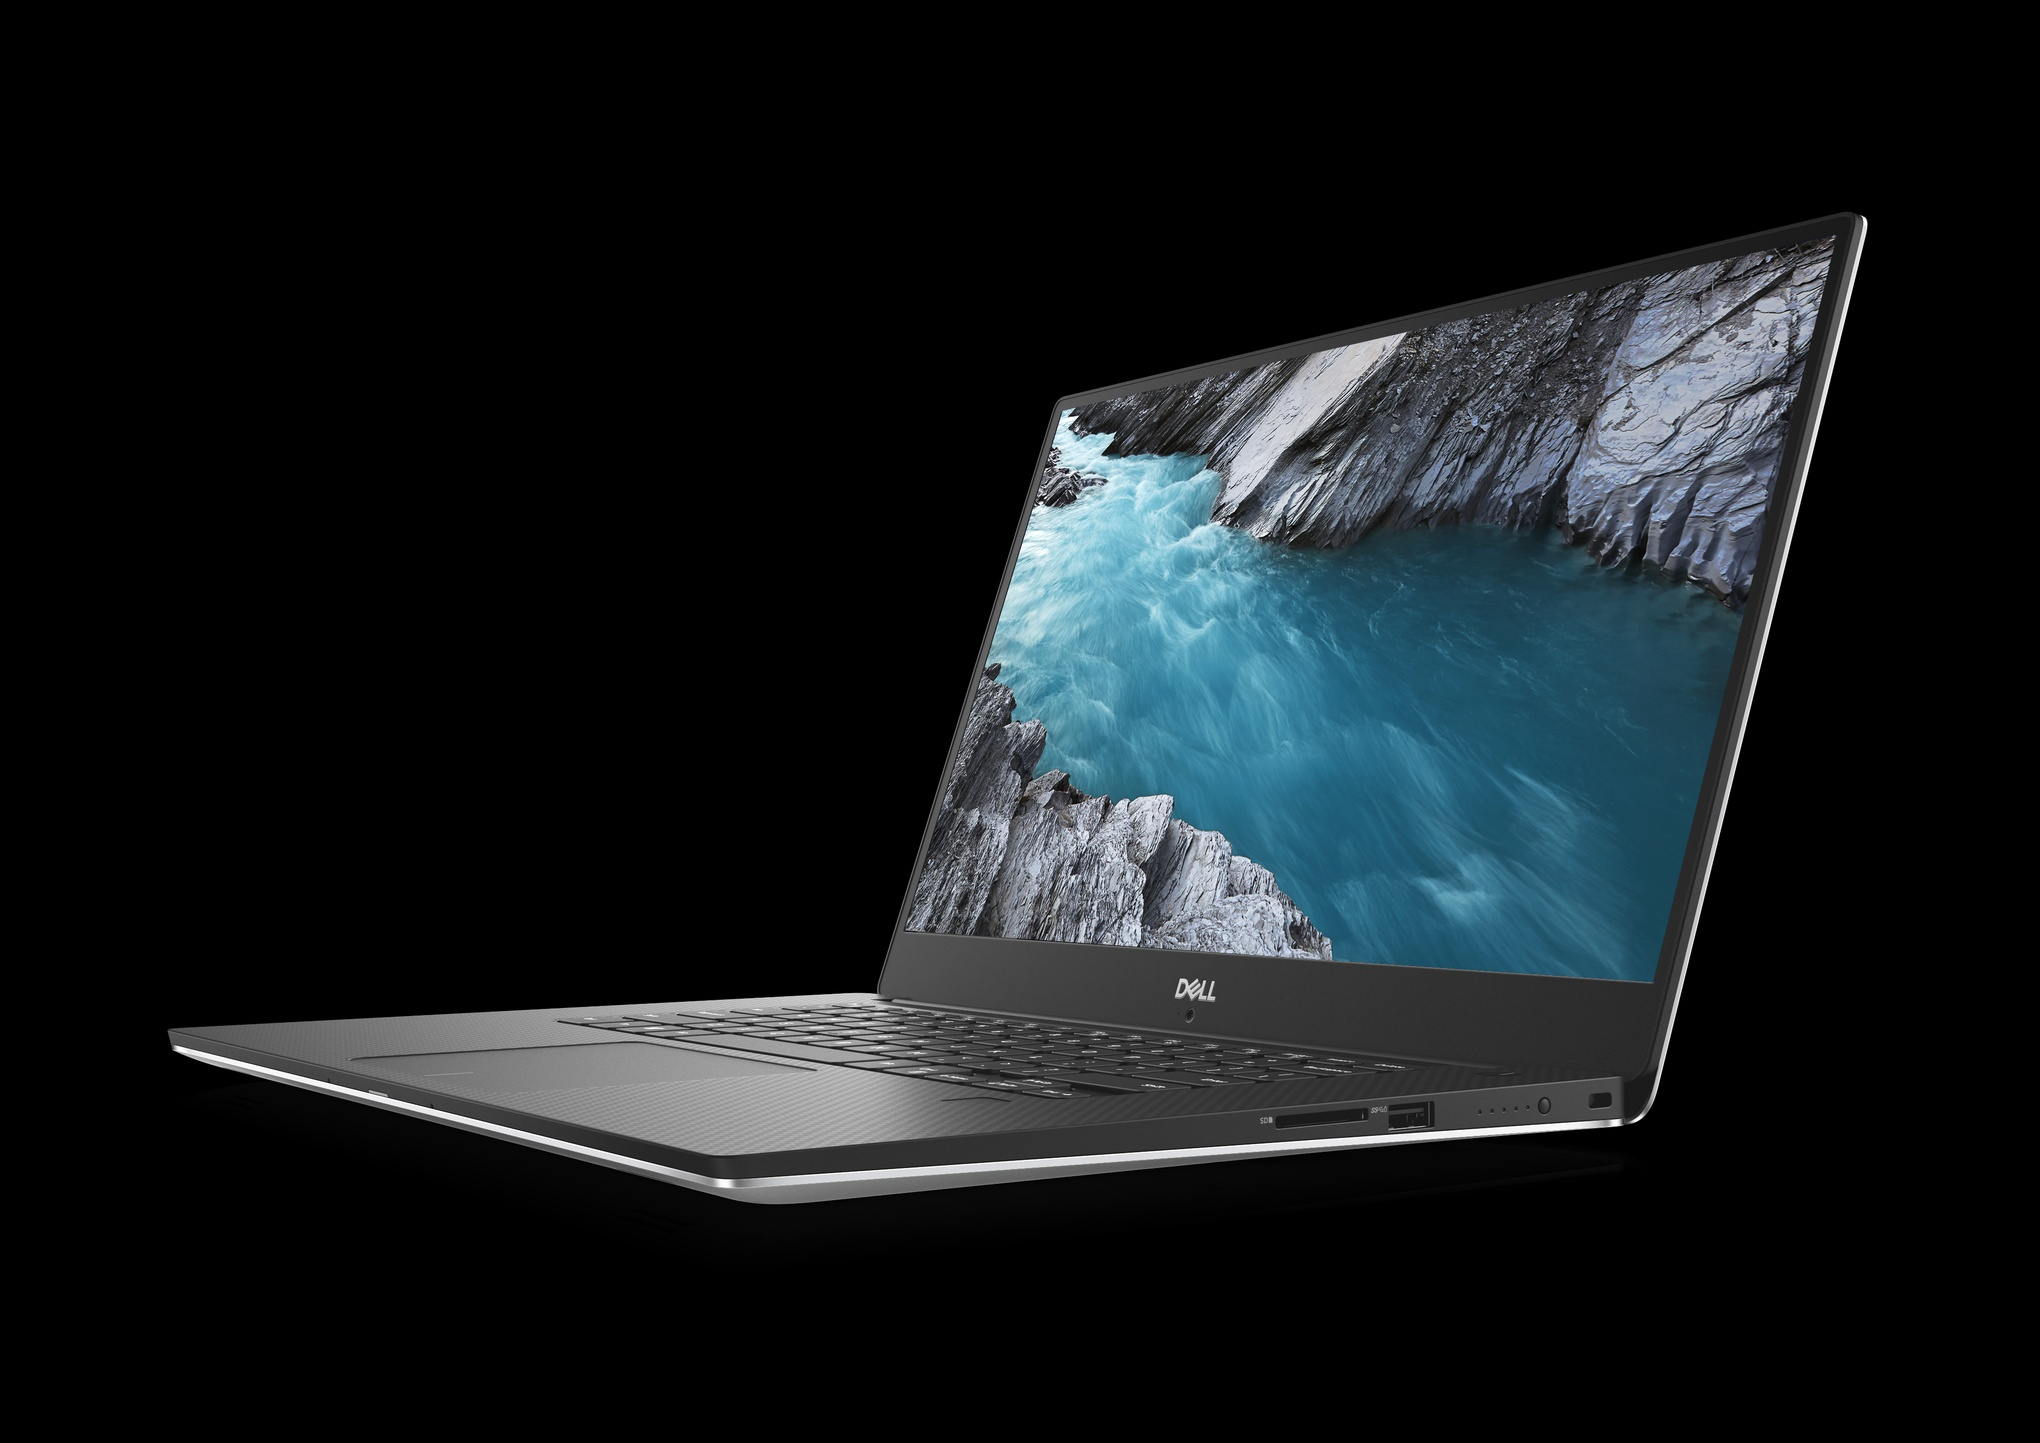 Dell - The Verge